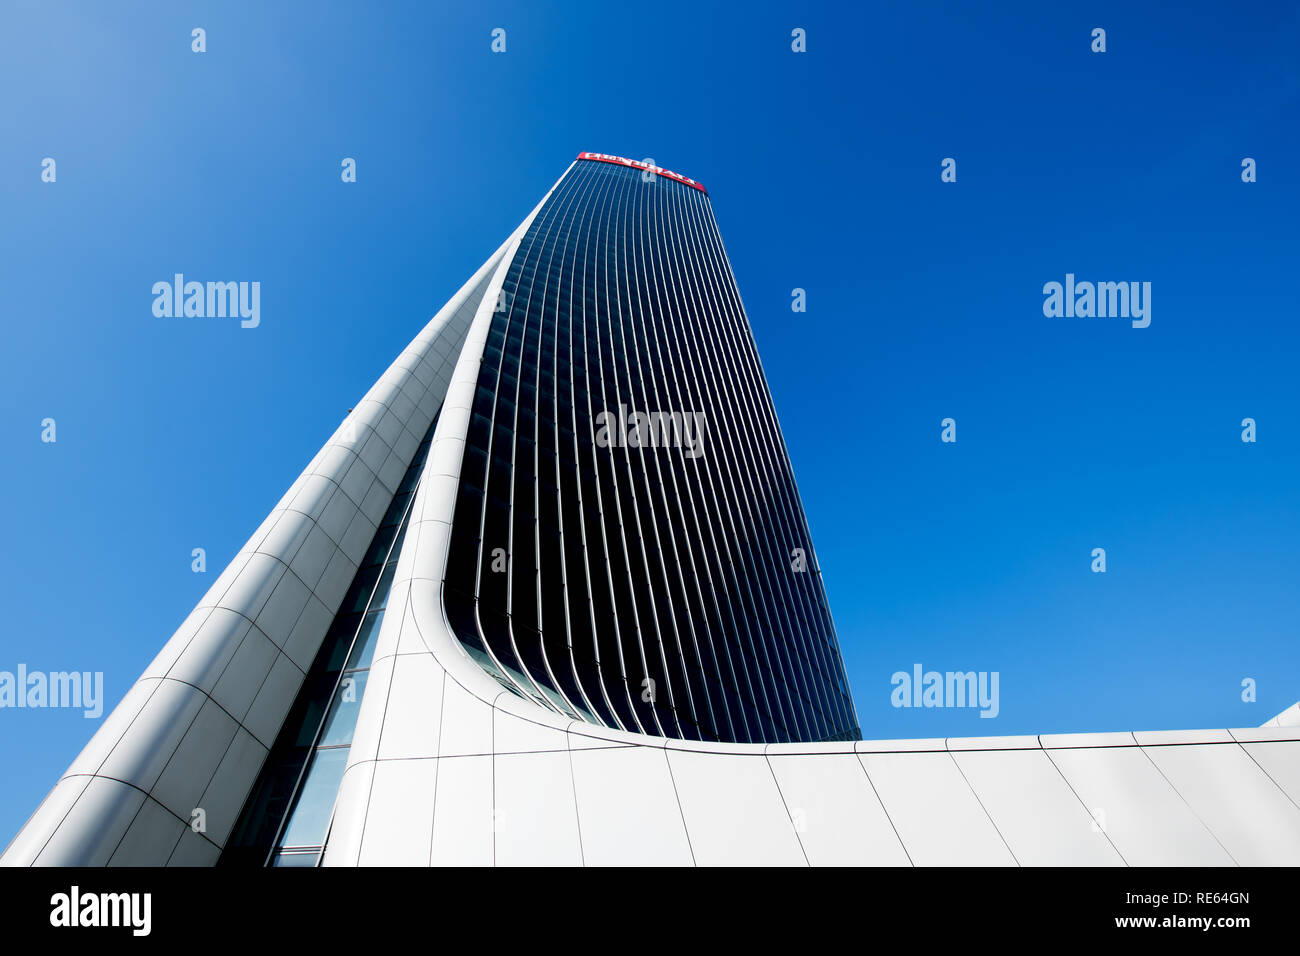 Architectural detail of the warped design of the Generali Tower by Zaha Hadid in Milan Italy in which the building twists on its central axis looking  - Stock Image